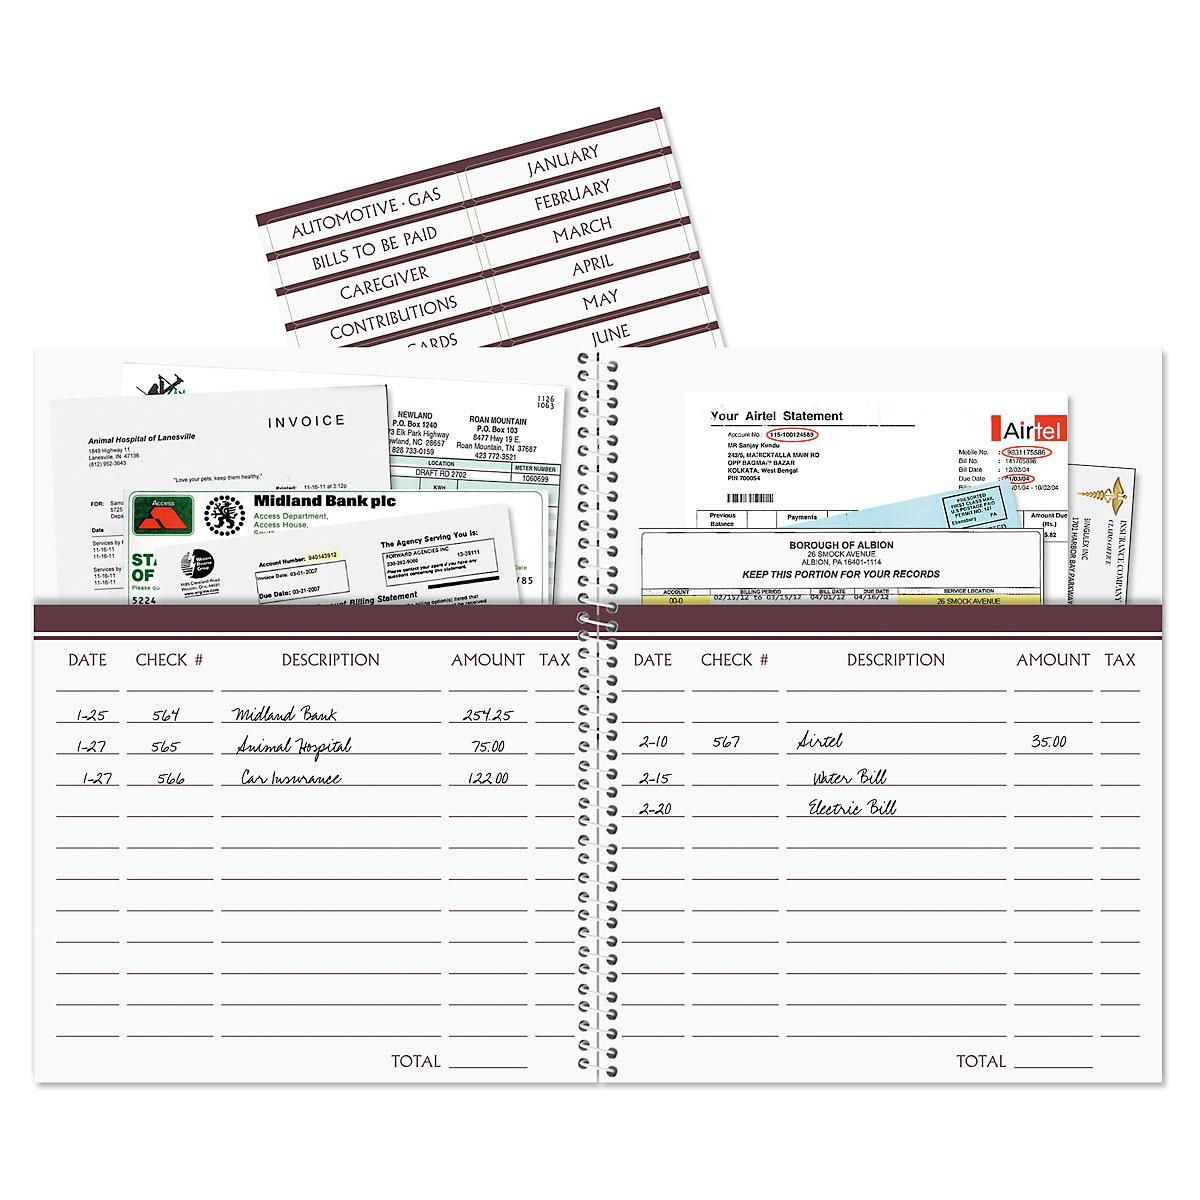 gray bursts bill paying organizer colorful images